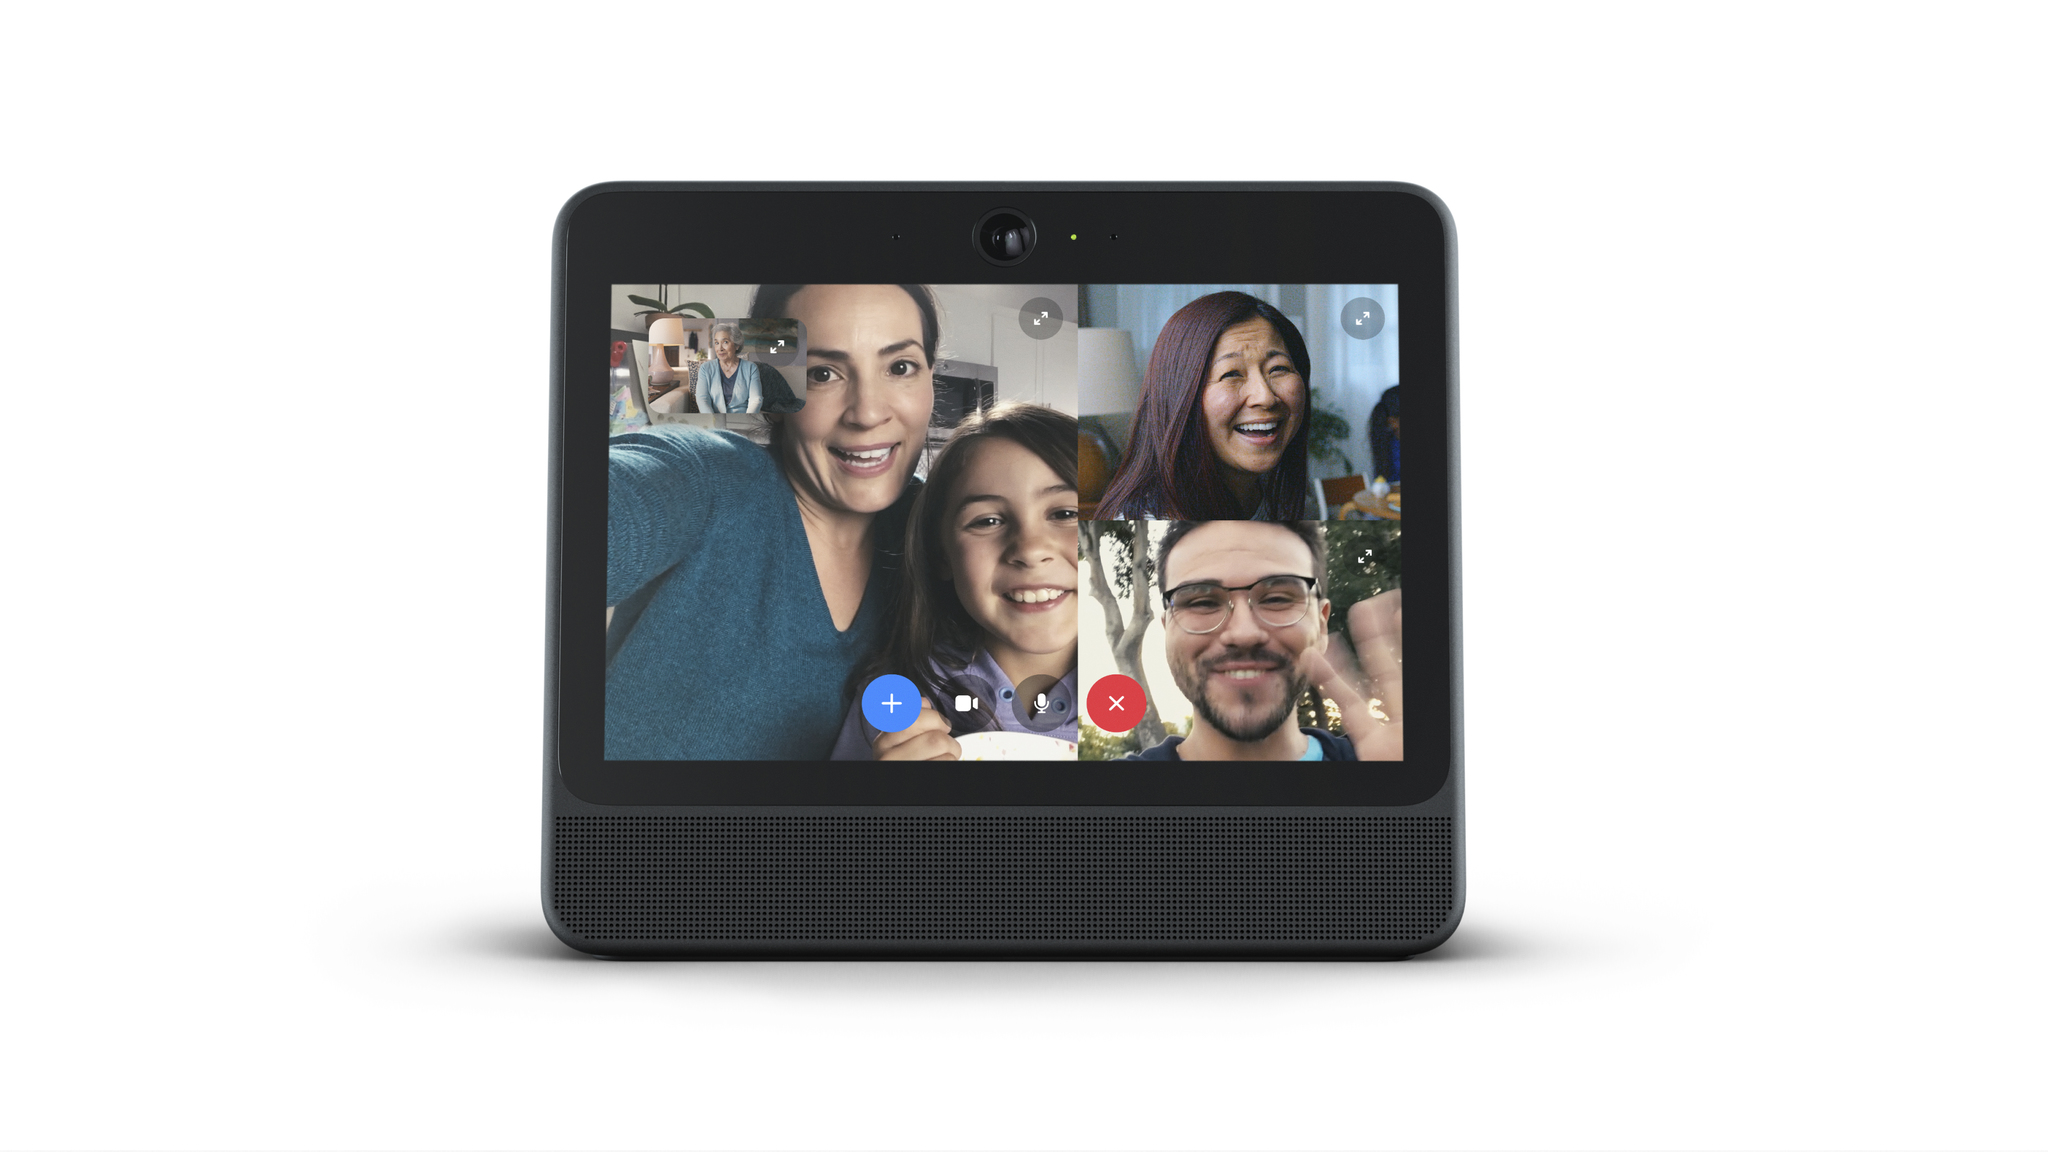 how to connect camera to facebook video call